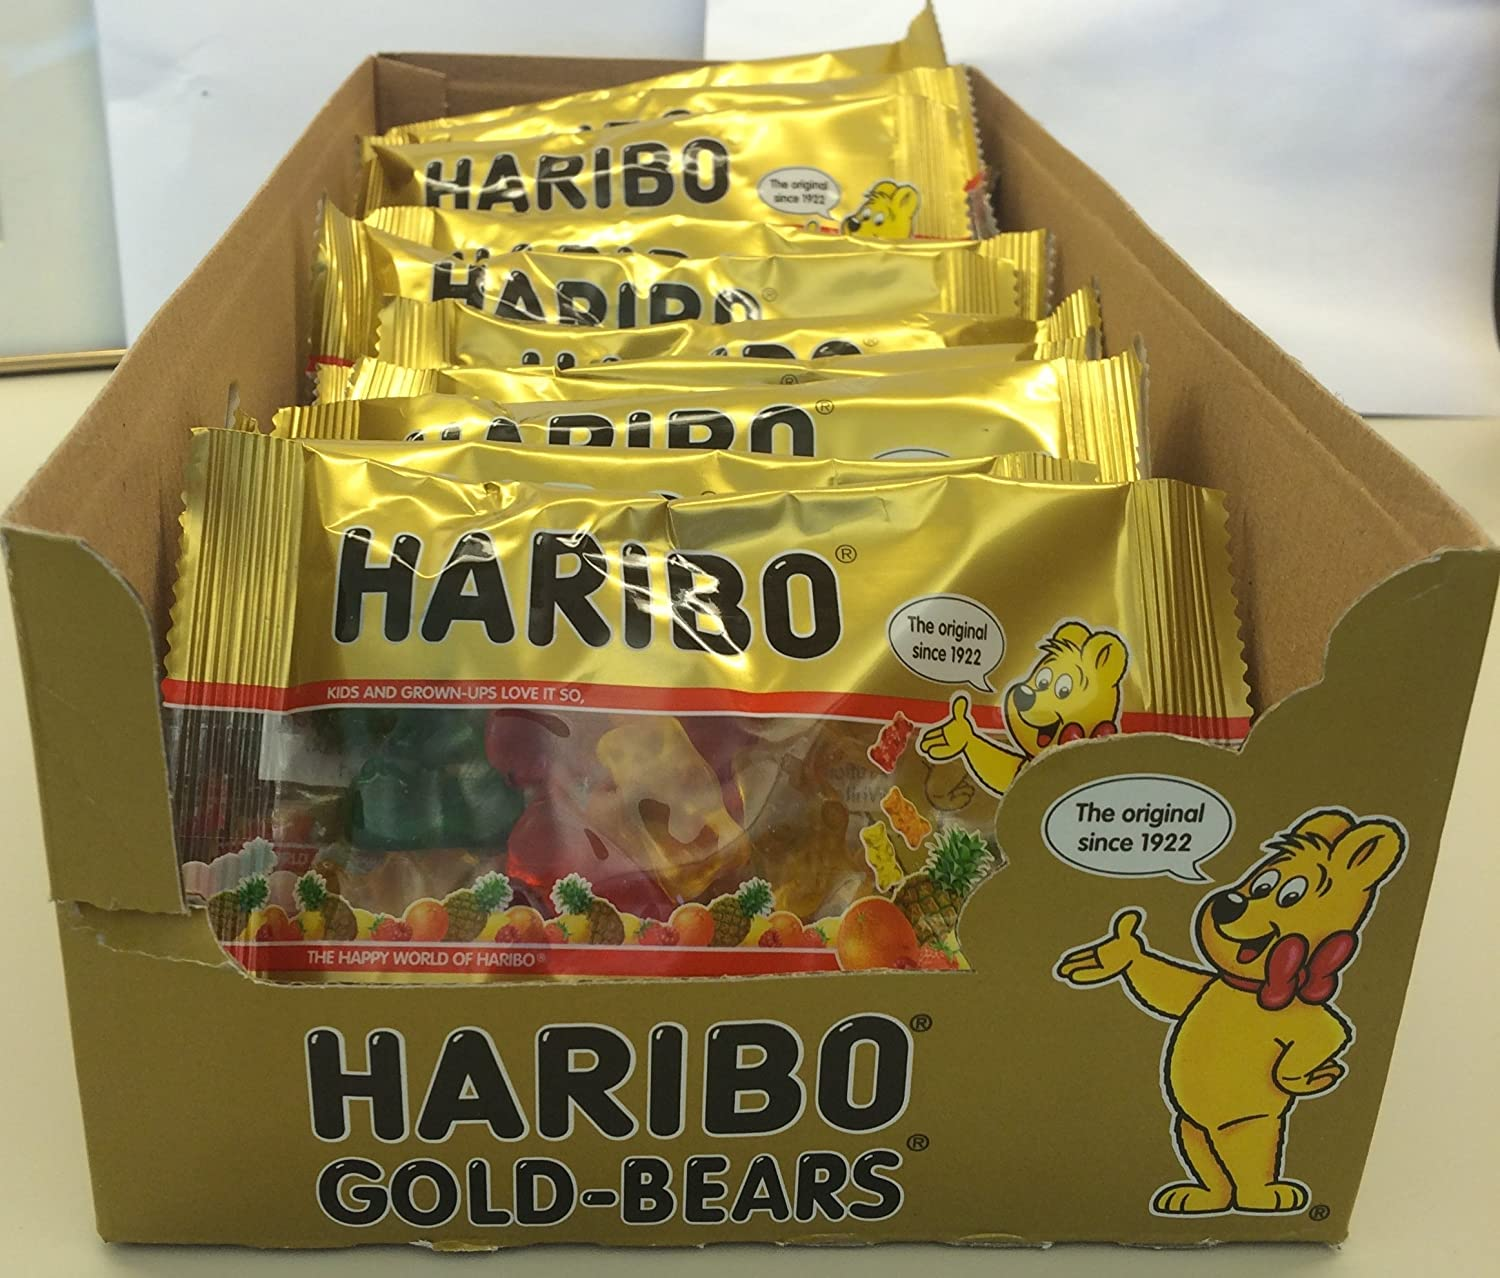 Haribo gummy bears are just one of many products that thomas - Amazon Com Haribo Gold Bears 2 Ounce Packages Pack Of 24 Gummy Candy Grocery Gourmet Food